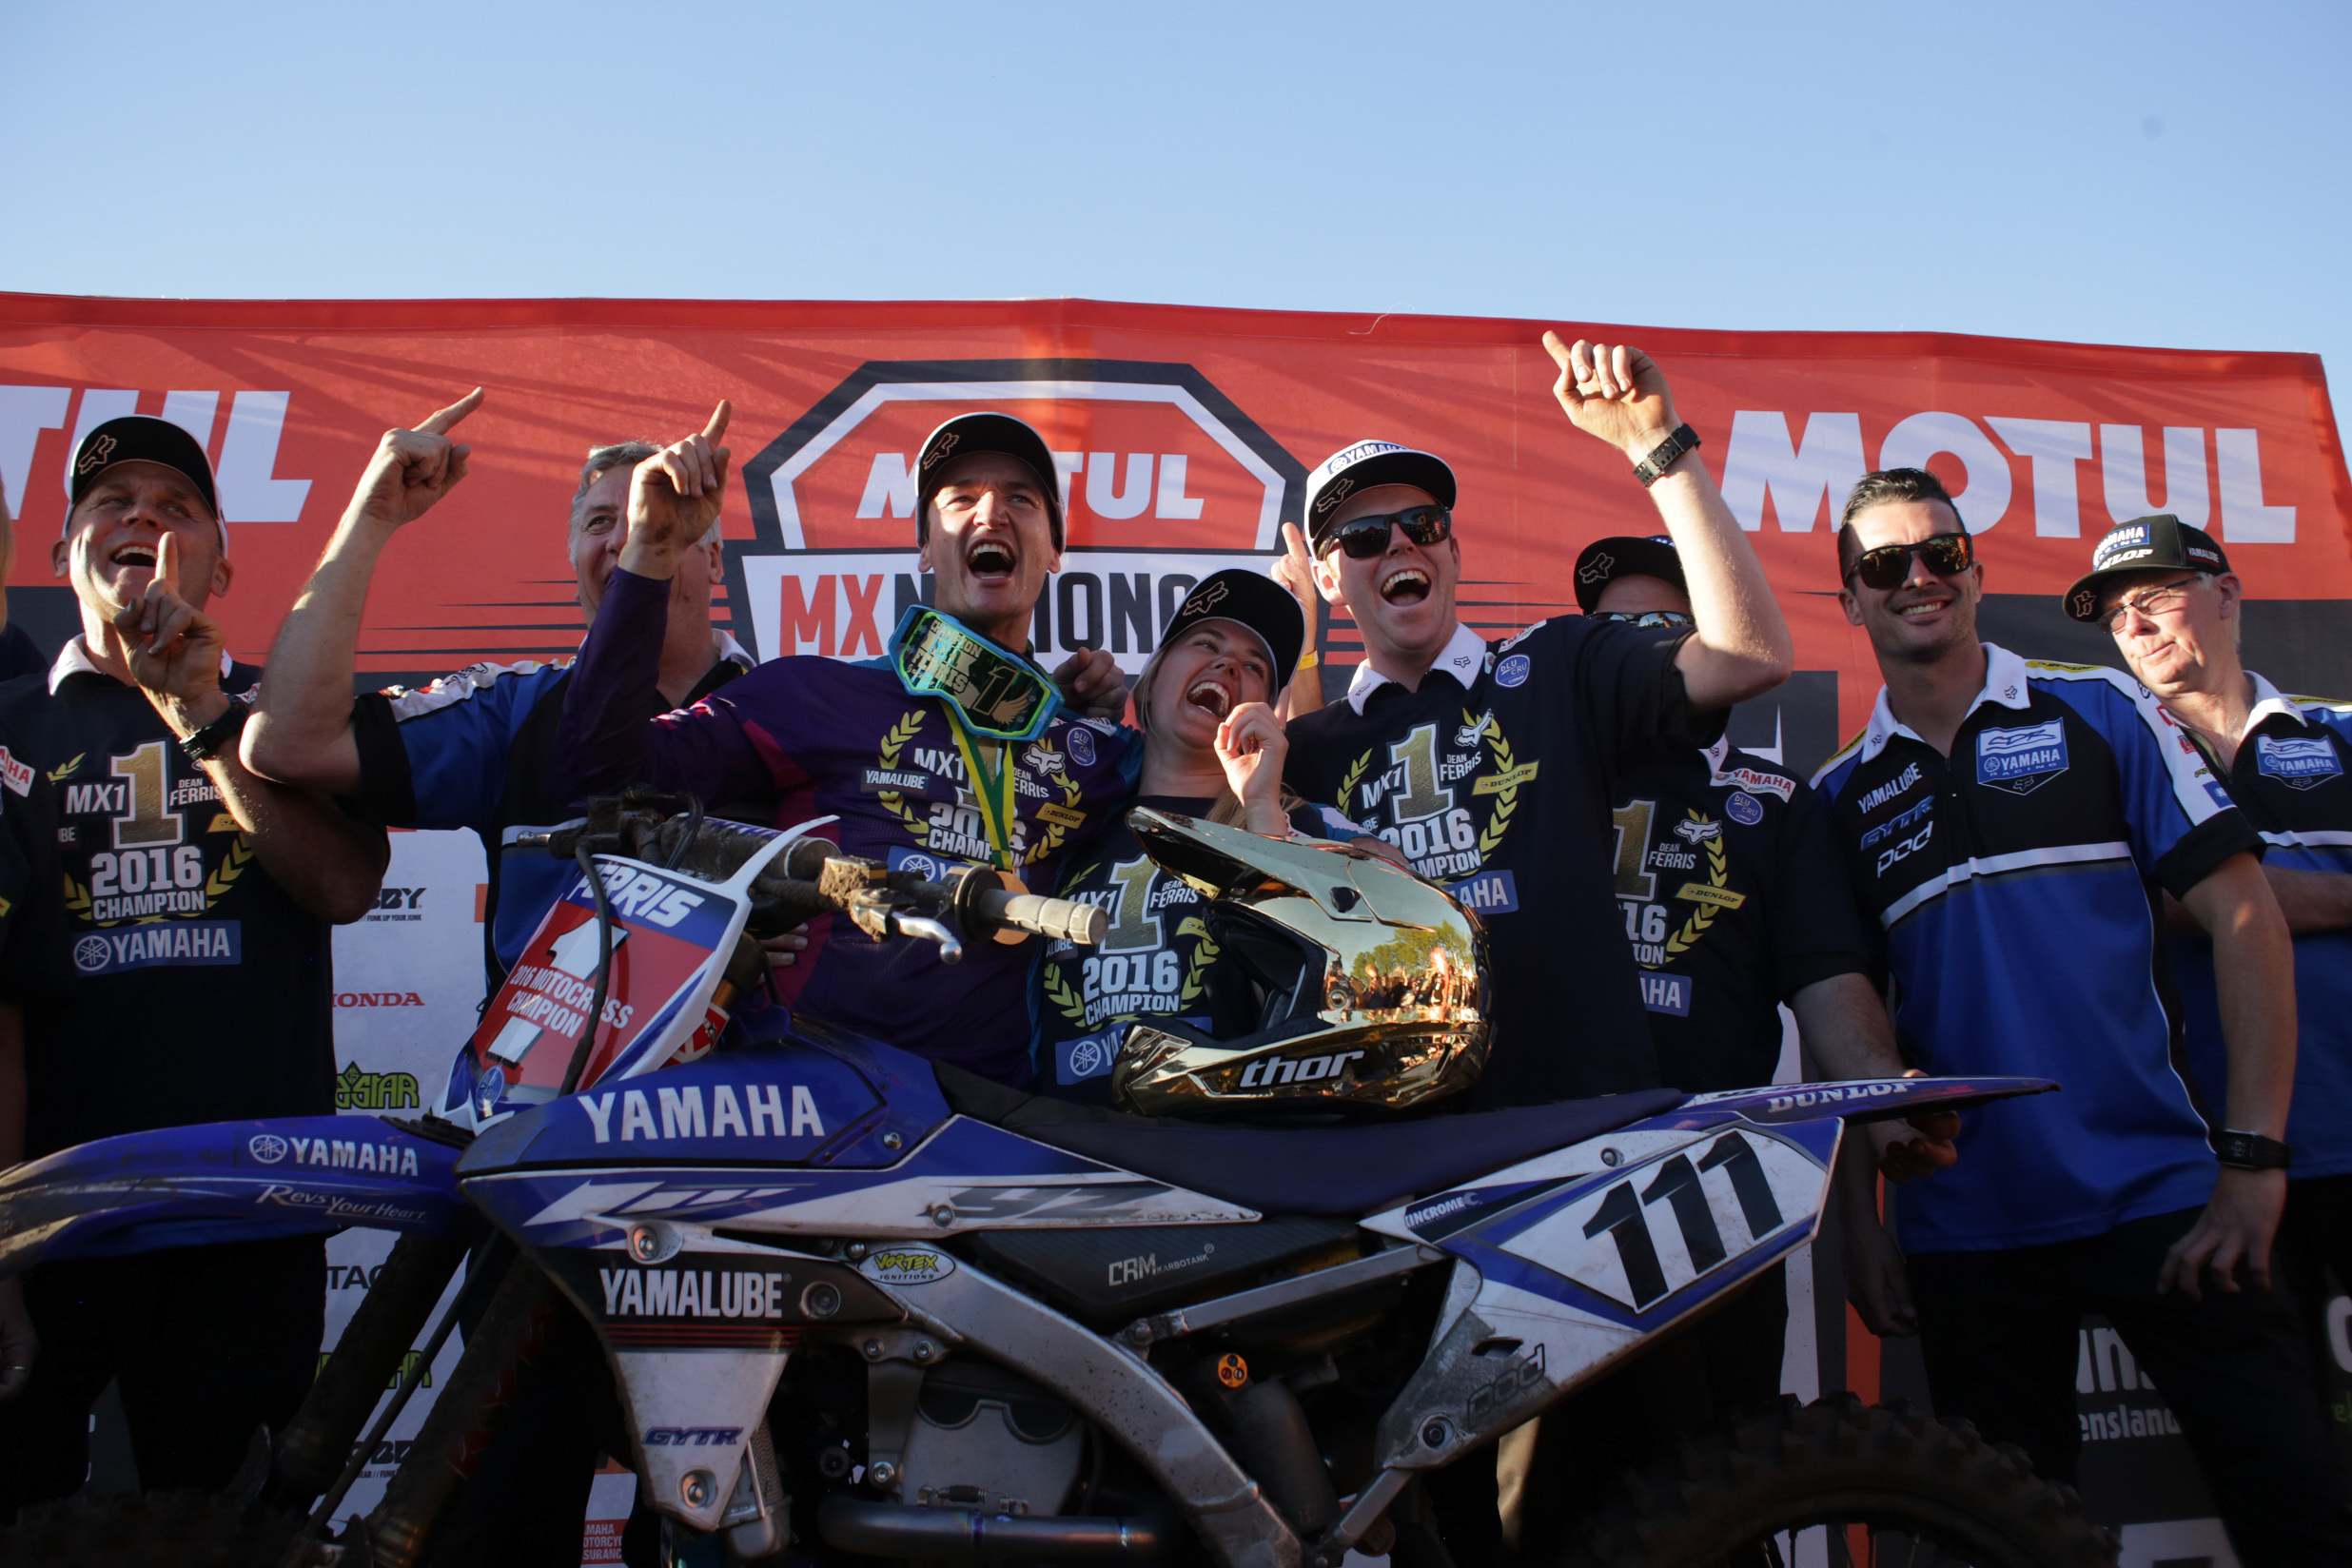 CDR Yamaha's Dean Ferris Wins MX Nats After Nail Biting Finale